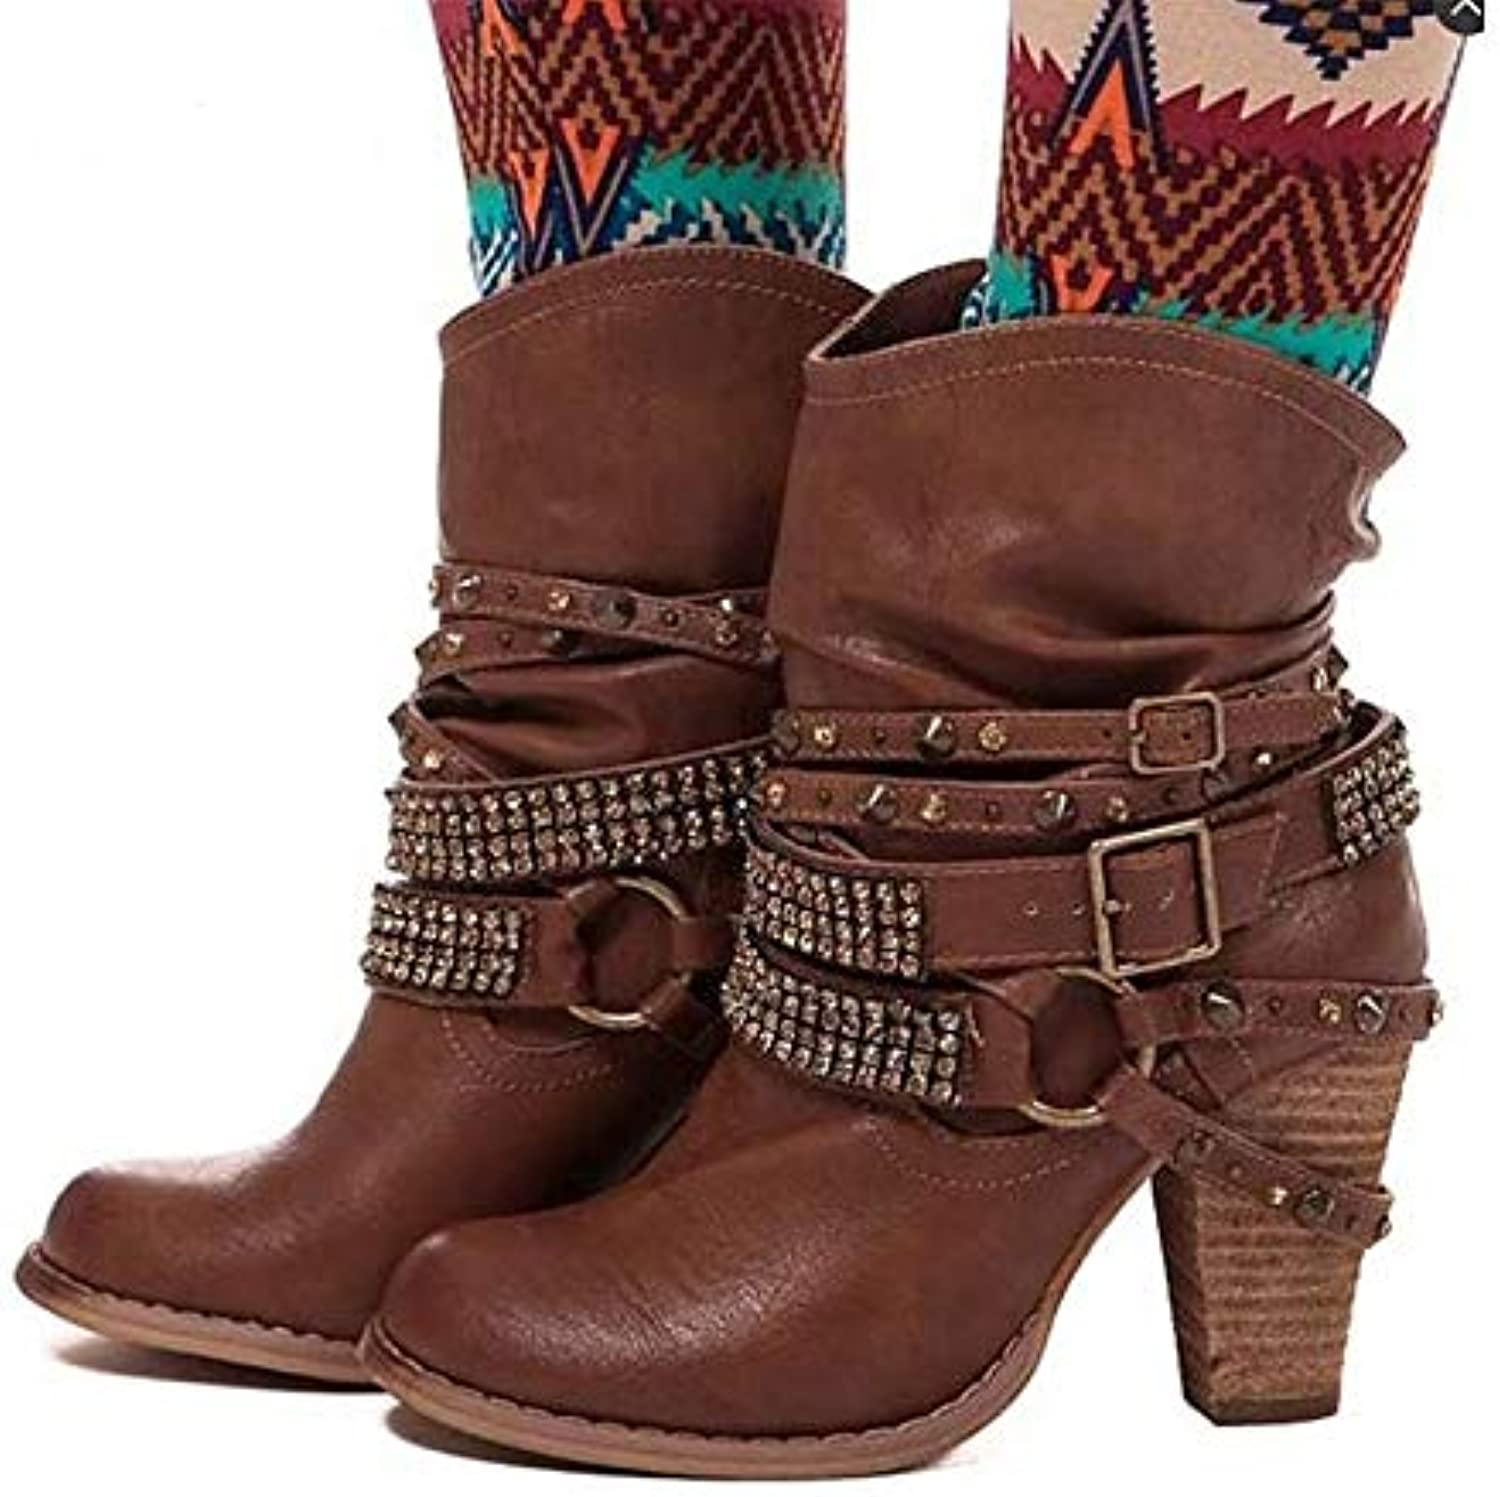 Women's Fashion Boots PU Fall * Winter Boots Chunky Heel Pointed Toe MidCalf Boots Rhistone /Rivet / Buckle Coffee /Brown / Khaki